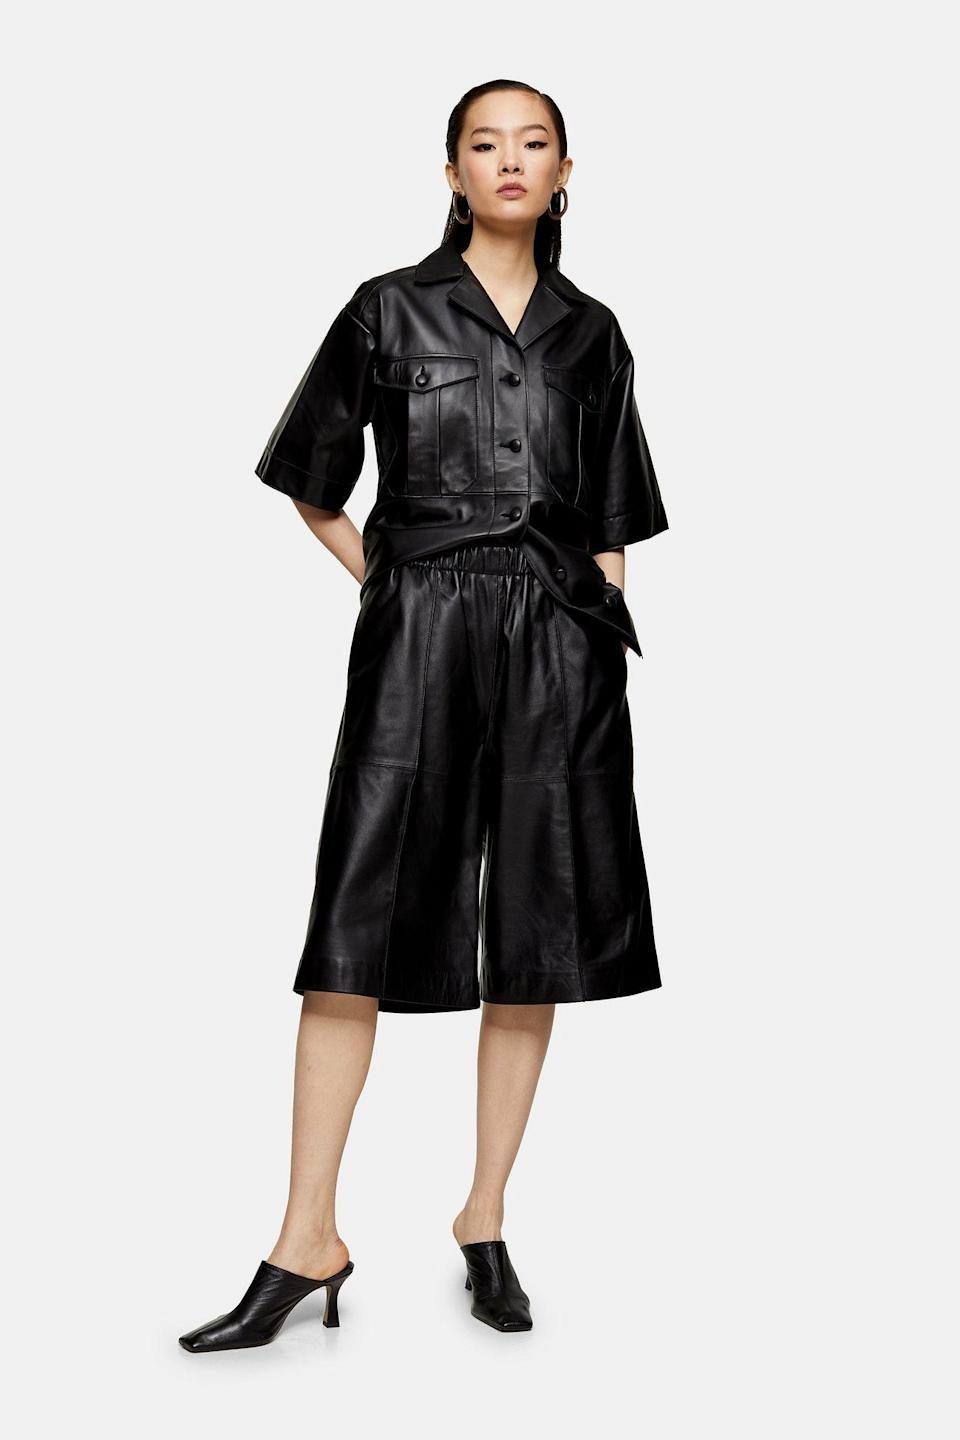 """<p><strong>Topshop</strong></p><p>topshop.com</p><p><strong>$270.00</strong></p><p><a href=""""https://go.redirectingat.com?id=74968X1596630&url=https%3A%2F%2Fus.topshop.com%2Fen%2Ftsus%2Fproduct%2Fleather-bermuda-by-boutique-9601836&sref=https%3A%2F%2Fwww.cosmopolitan.com%2Fstyle-beauty%2Ffashion%2Fg30933395%2Ffall-fashion-trends-2020%2F"""" rel=""""nofollow noopener"""" target=""""_blank"""" data-ylk=""""slk:Shop Now"""" class=""""link rapid-noclick-resp"""">Shop Now</a></p><p>Not ready for pants yet? No problem. Leather shorts are the way to go.</p>"""